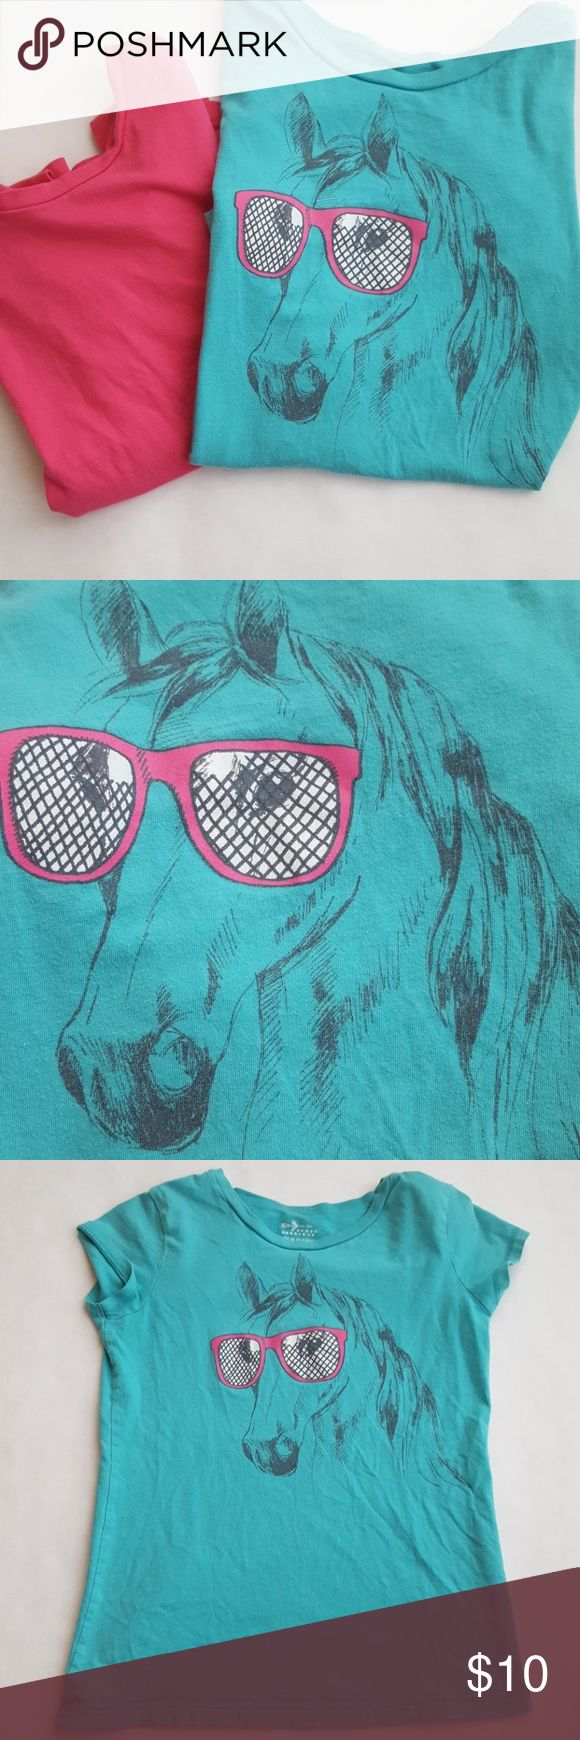 Old Navy Teal Horse TShirt and Pink TShirt Two tshirts ready for fun.  Old Navy Size Large (10/12)   teal shirt with a horse wearing pink sunglasses. Also get a solid pink Large (10-12)  faded glory t-shirt to match! Used condition Old Navy Shirts & Tops Tees - Short Sleeve